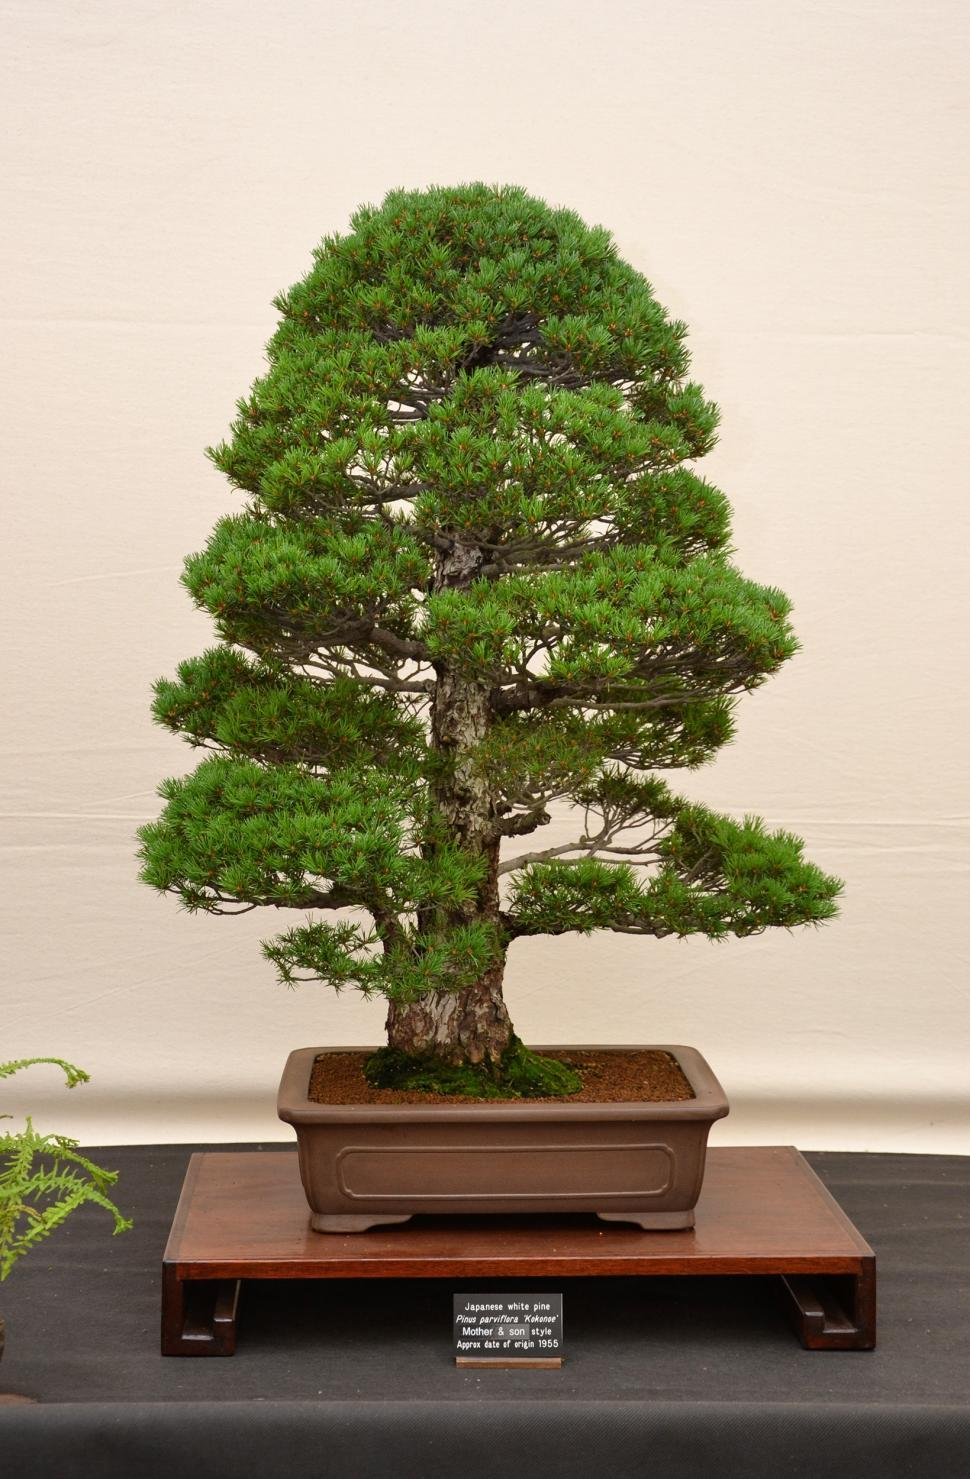 Download Free Stock HD Photo of Japanese white pine bonsai Online